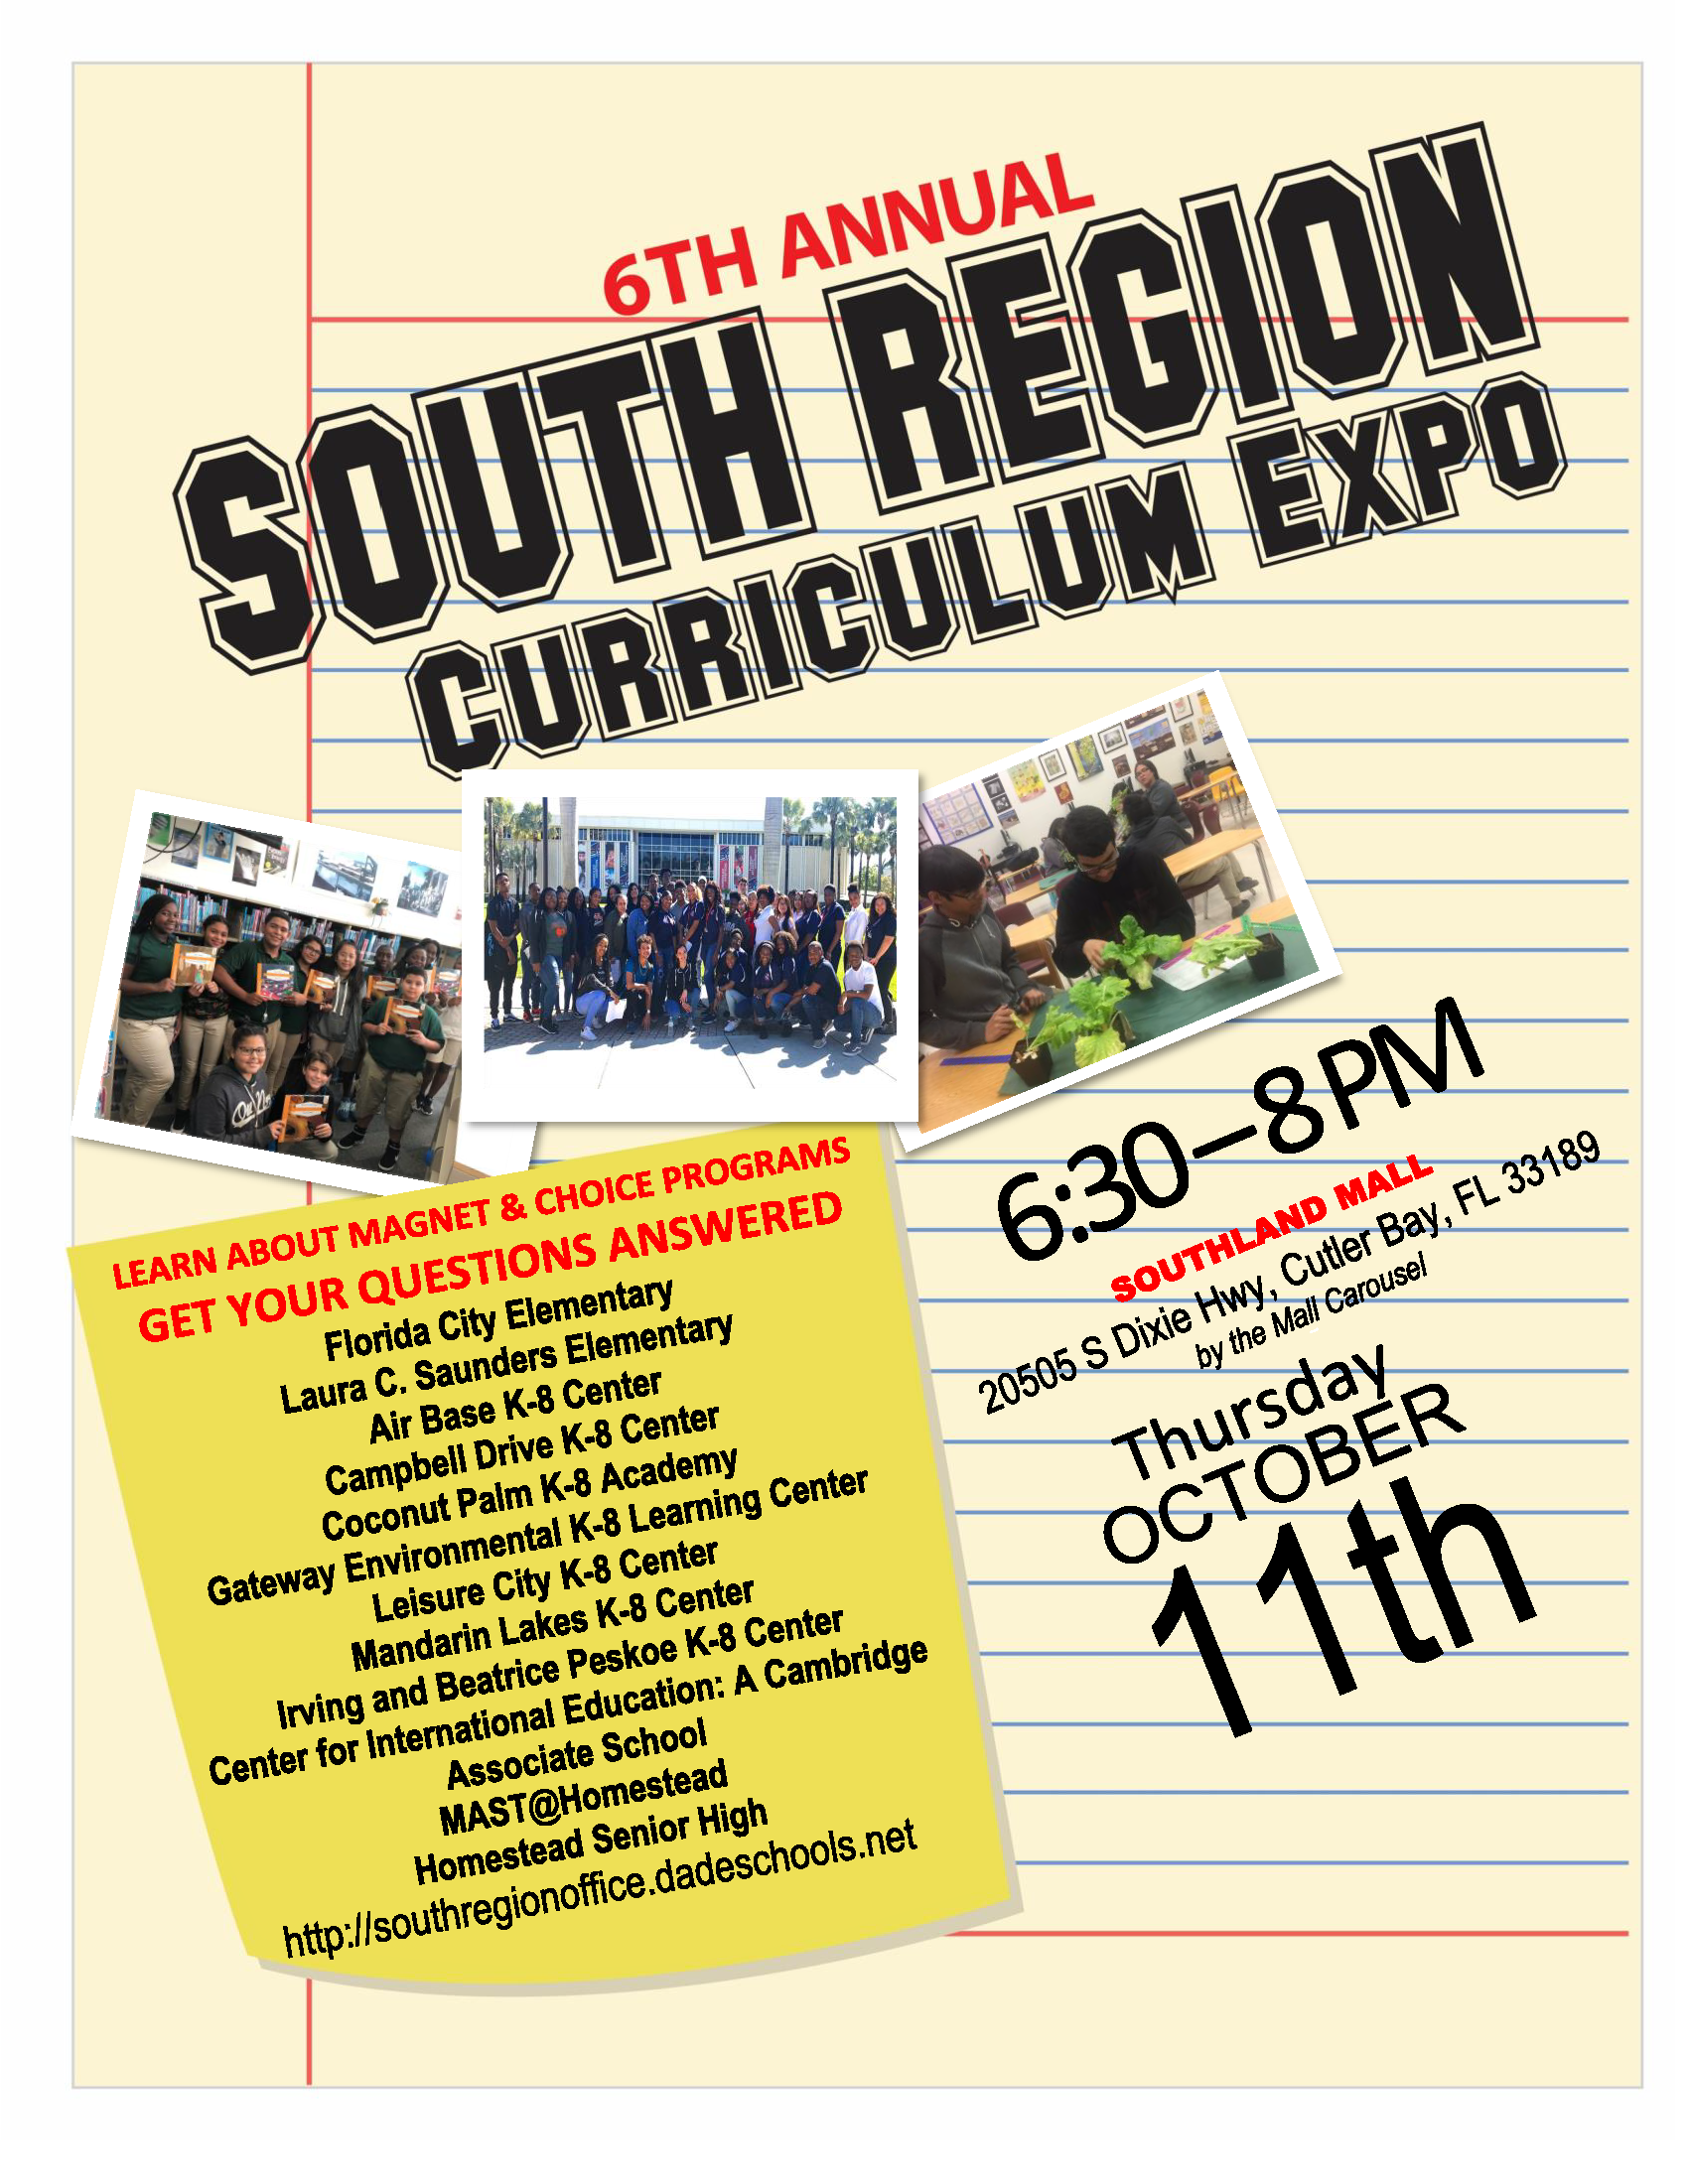 South Region Curriculum Expo @ Southland Mall